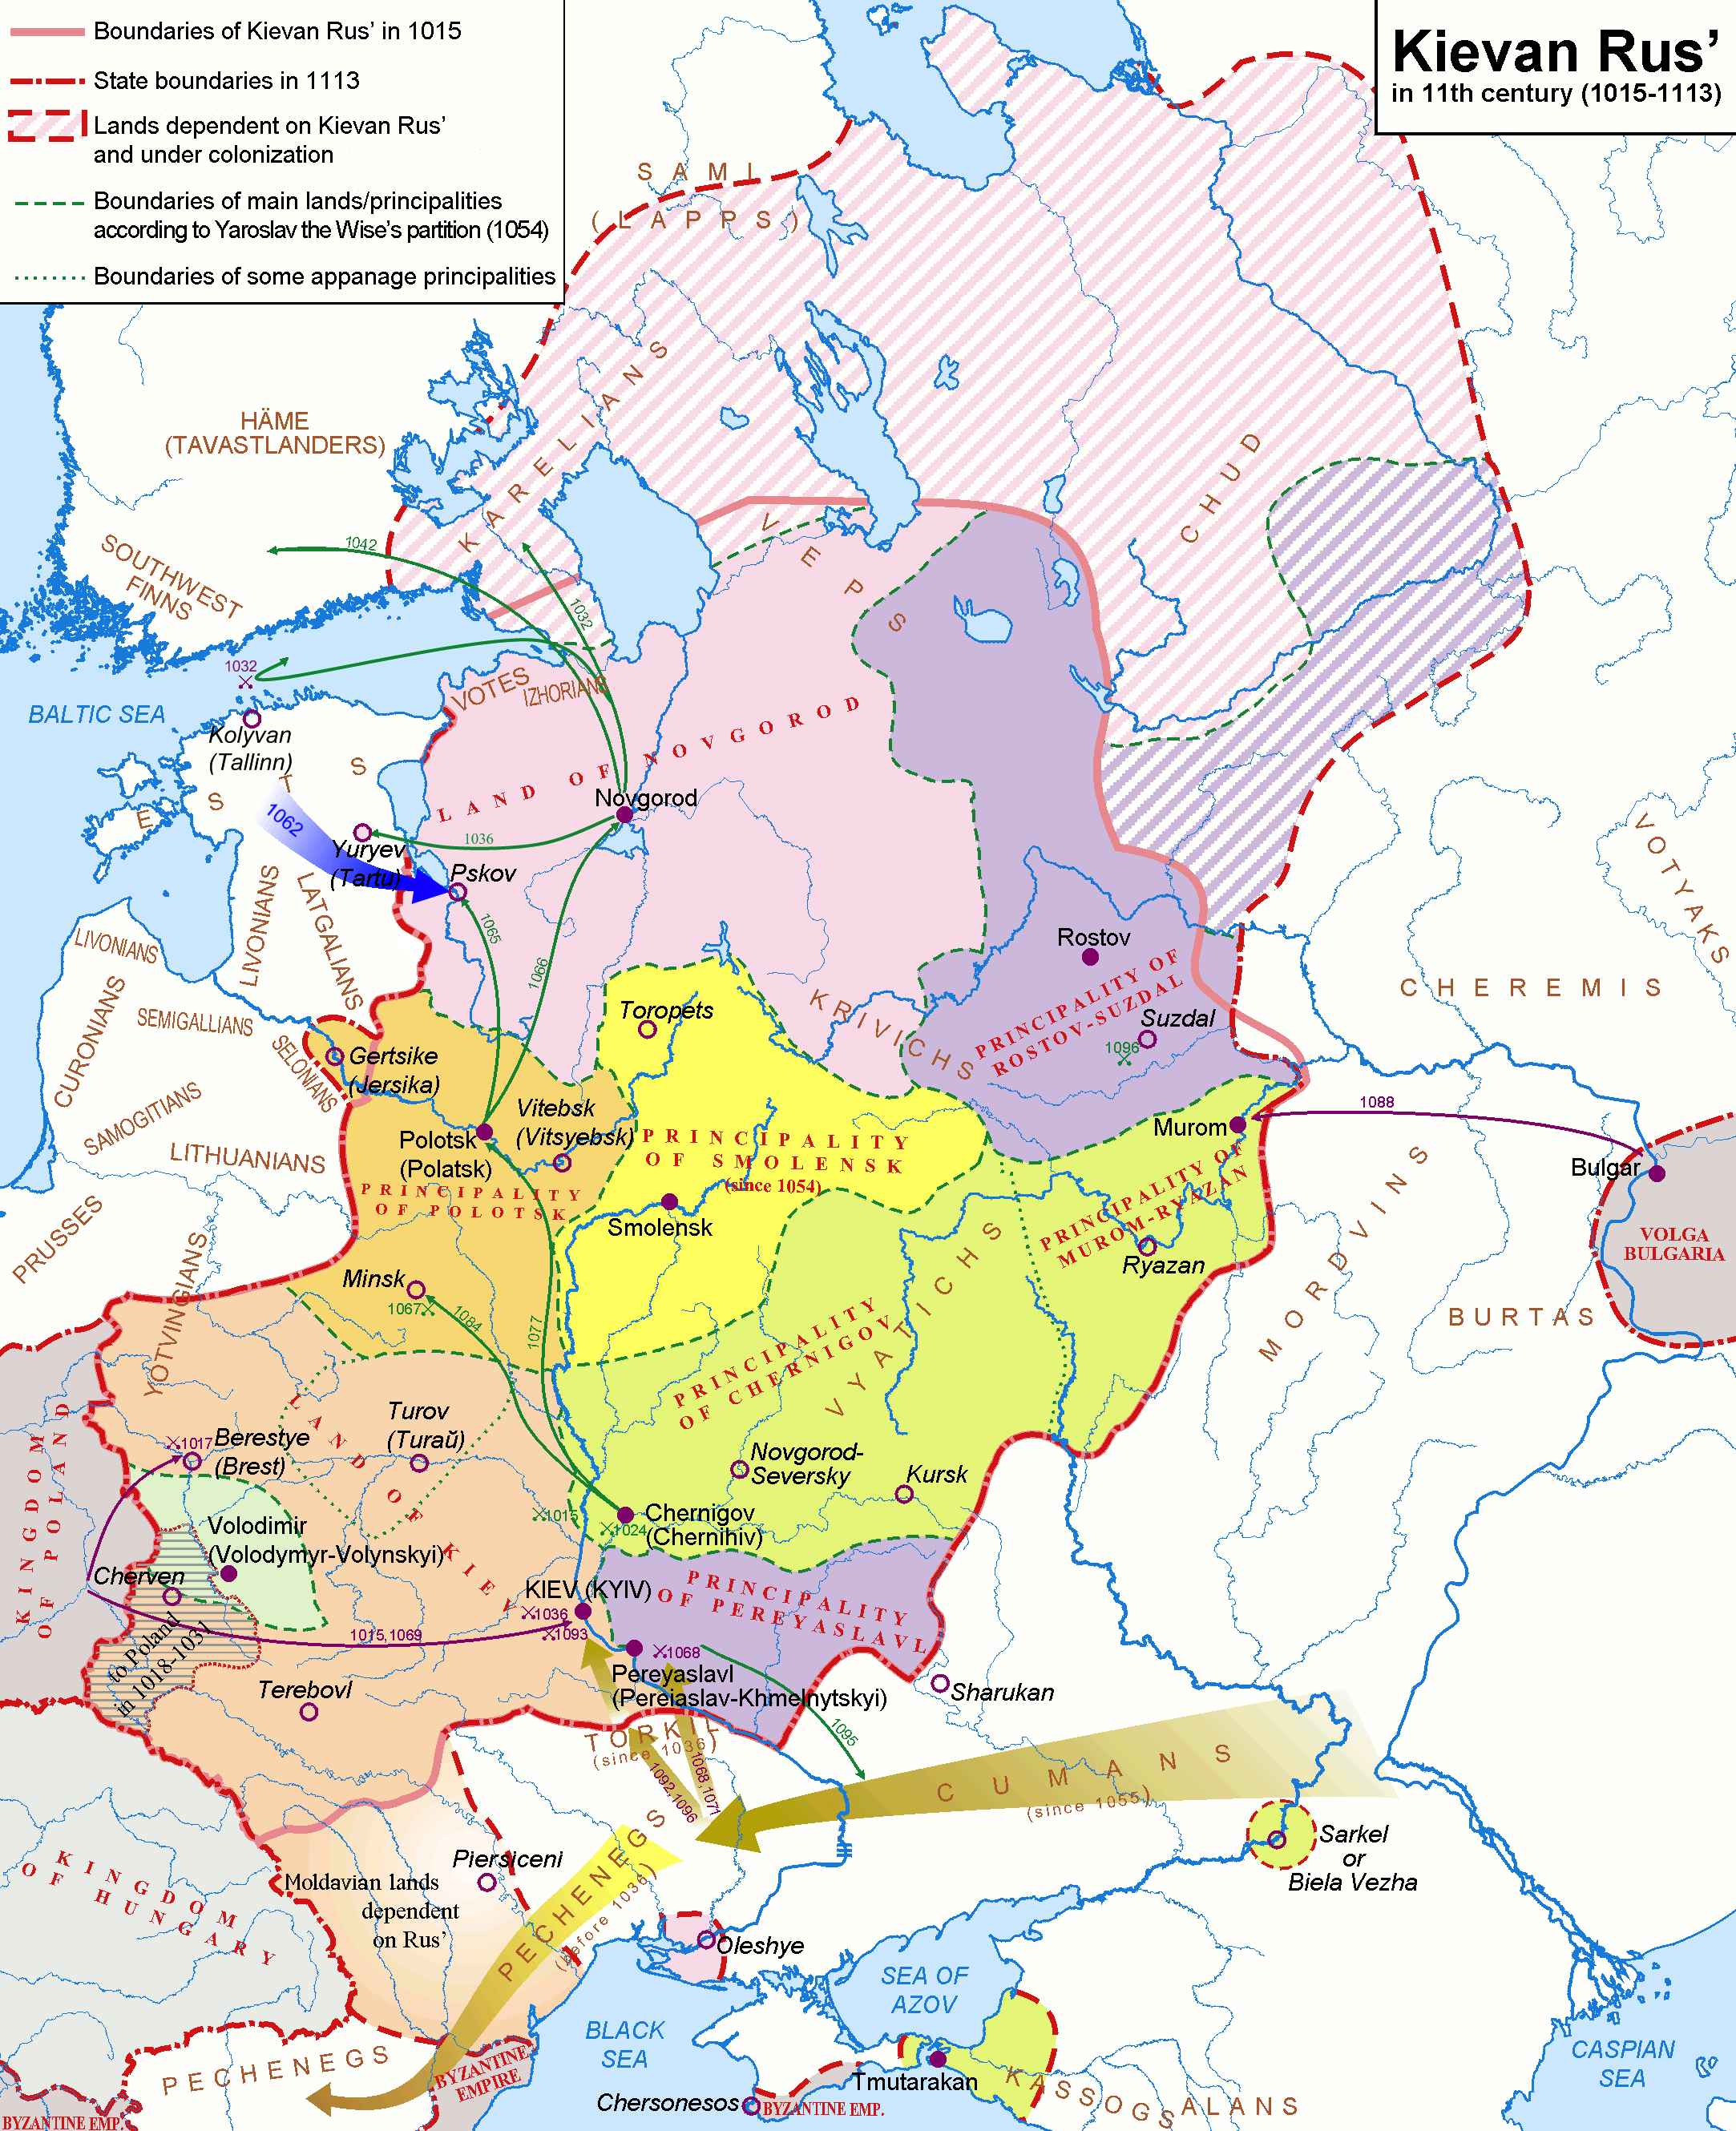 holy roman empire world map, islam world map, abbasid caliphate world map, medieval world map, mecca world map, sassanid empire world map, mongols world map, byzantine empire world map, timbuktu world map, charlemagne world map, umayyad caliphate world map, magna carta world map, on kievan russia on world map